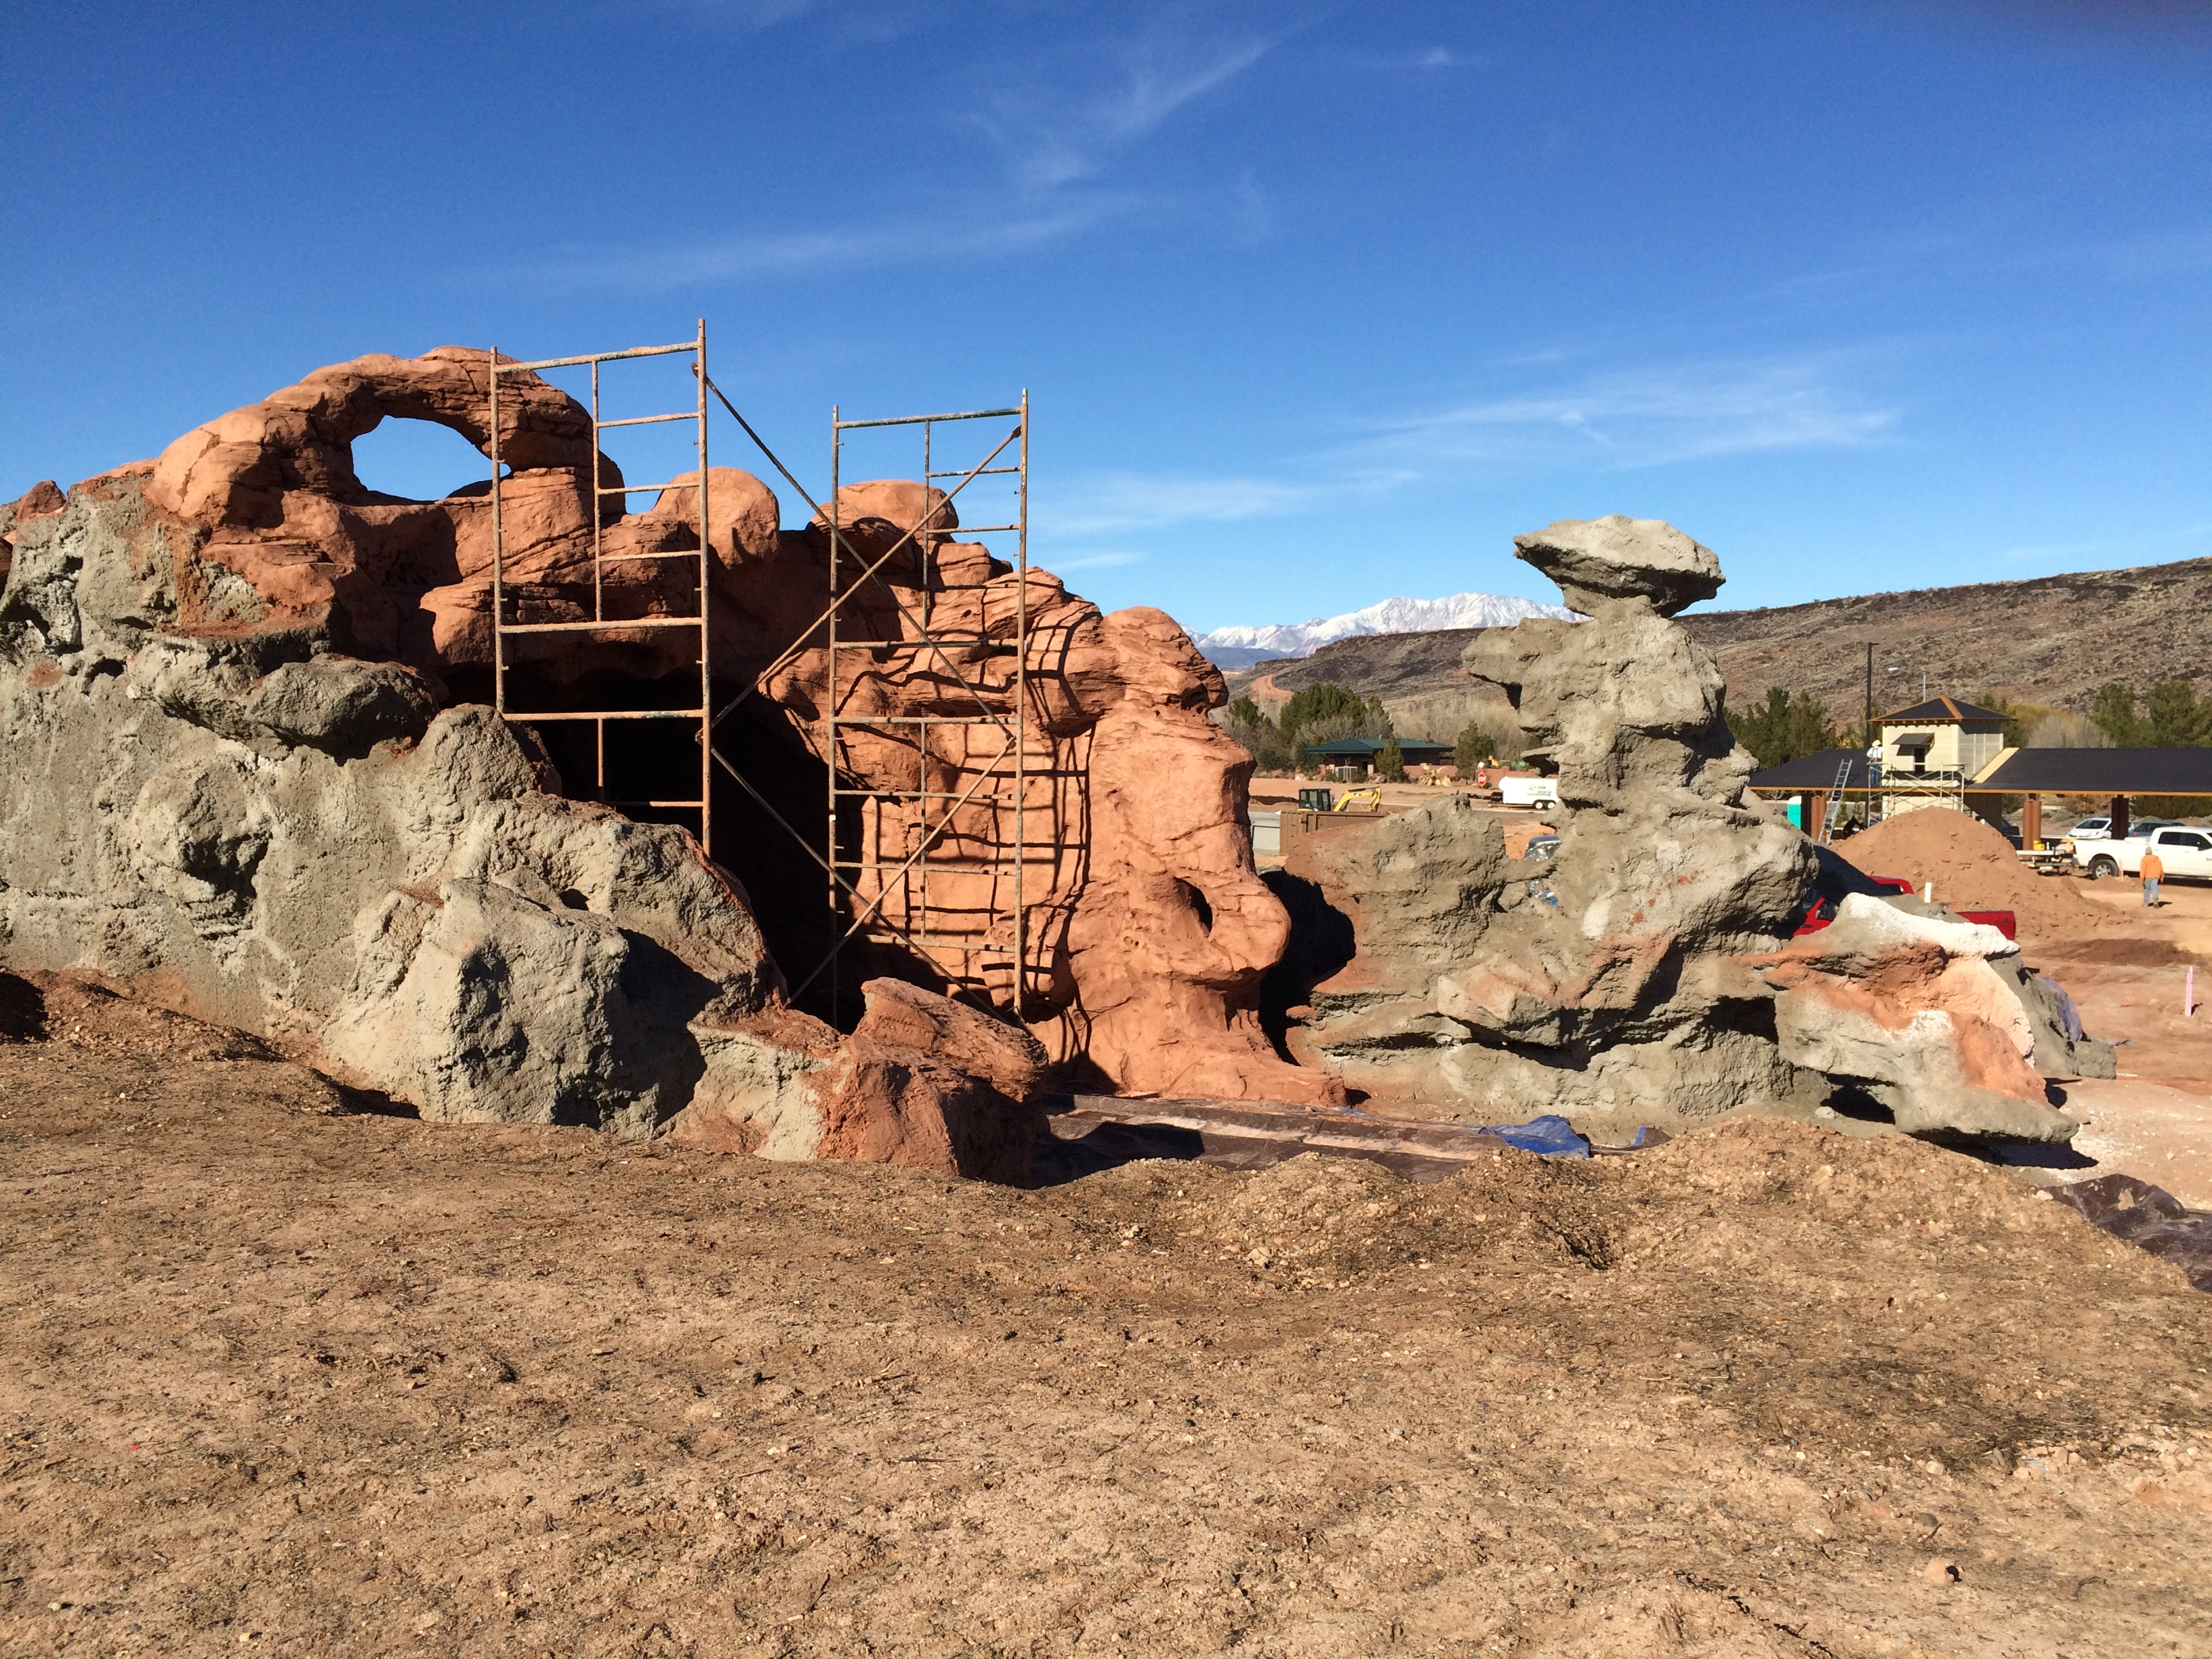 Faux-Rock features at the St. George All Abilities Park and Playground, St. George, Utah, Feb. 5, 2016 | Photo by Don Gilman, St. George News